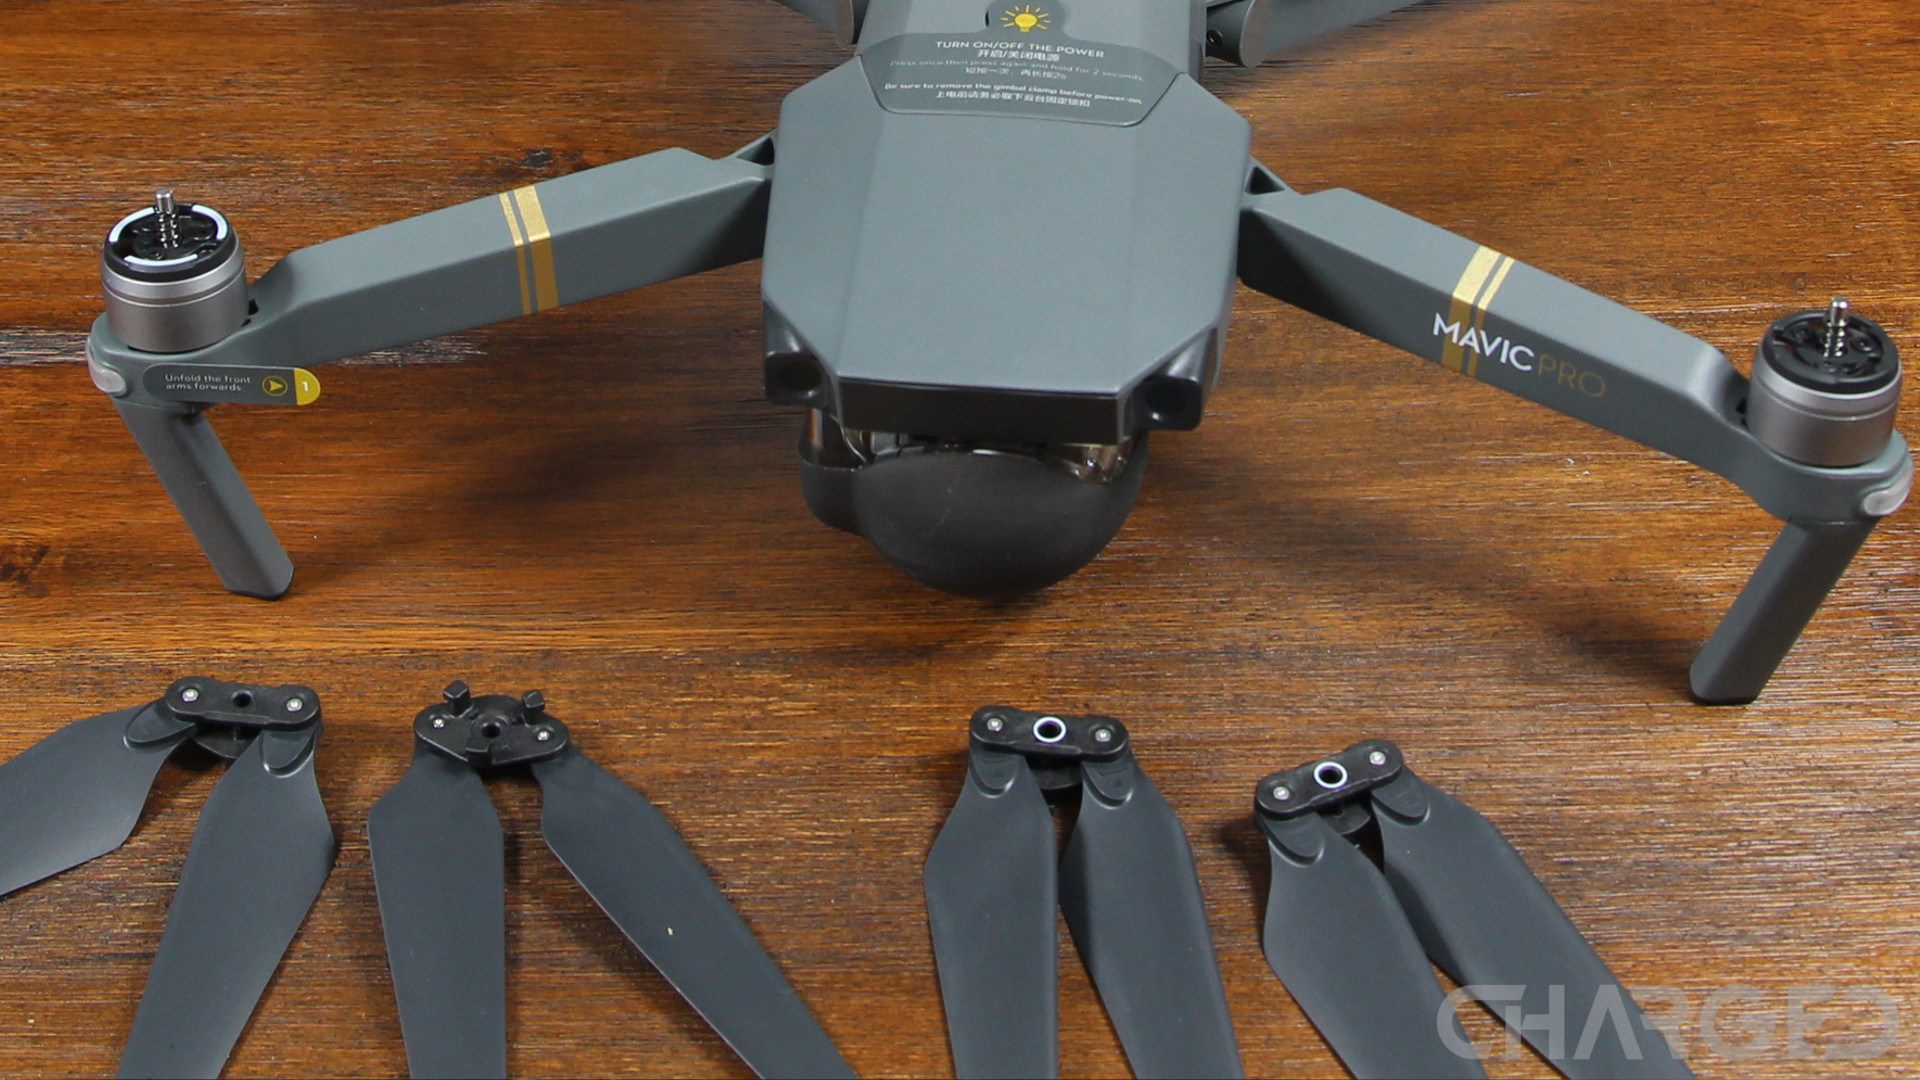 dji-mavic-pro-ch-featured-propellers-off